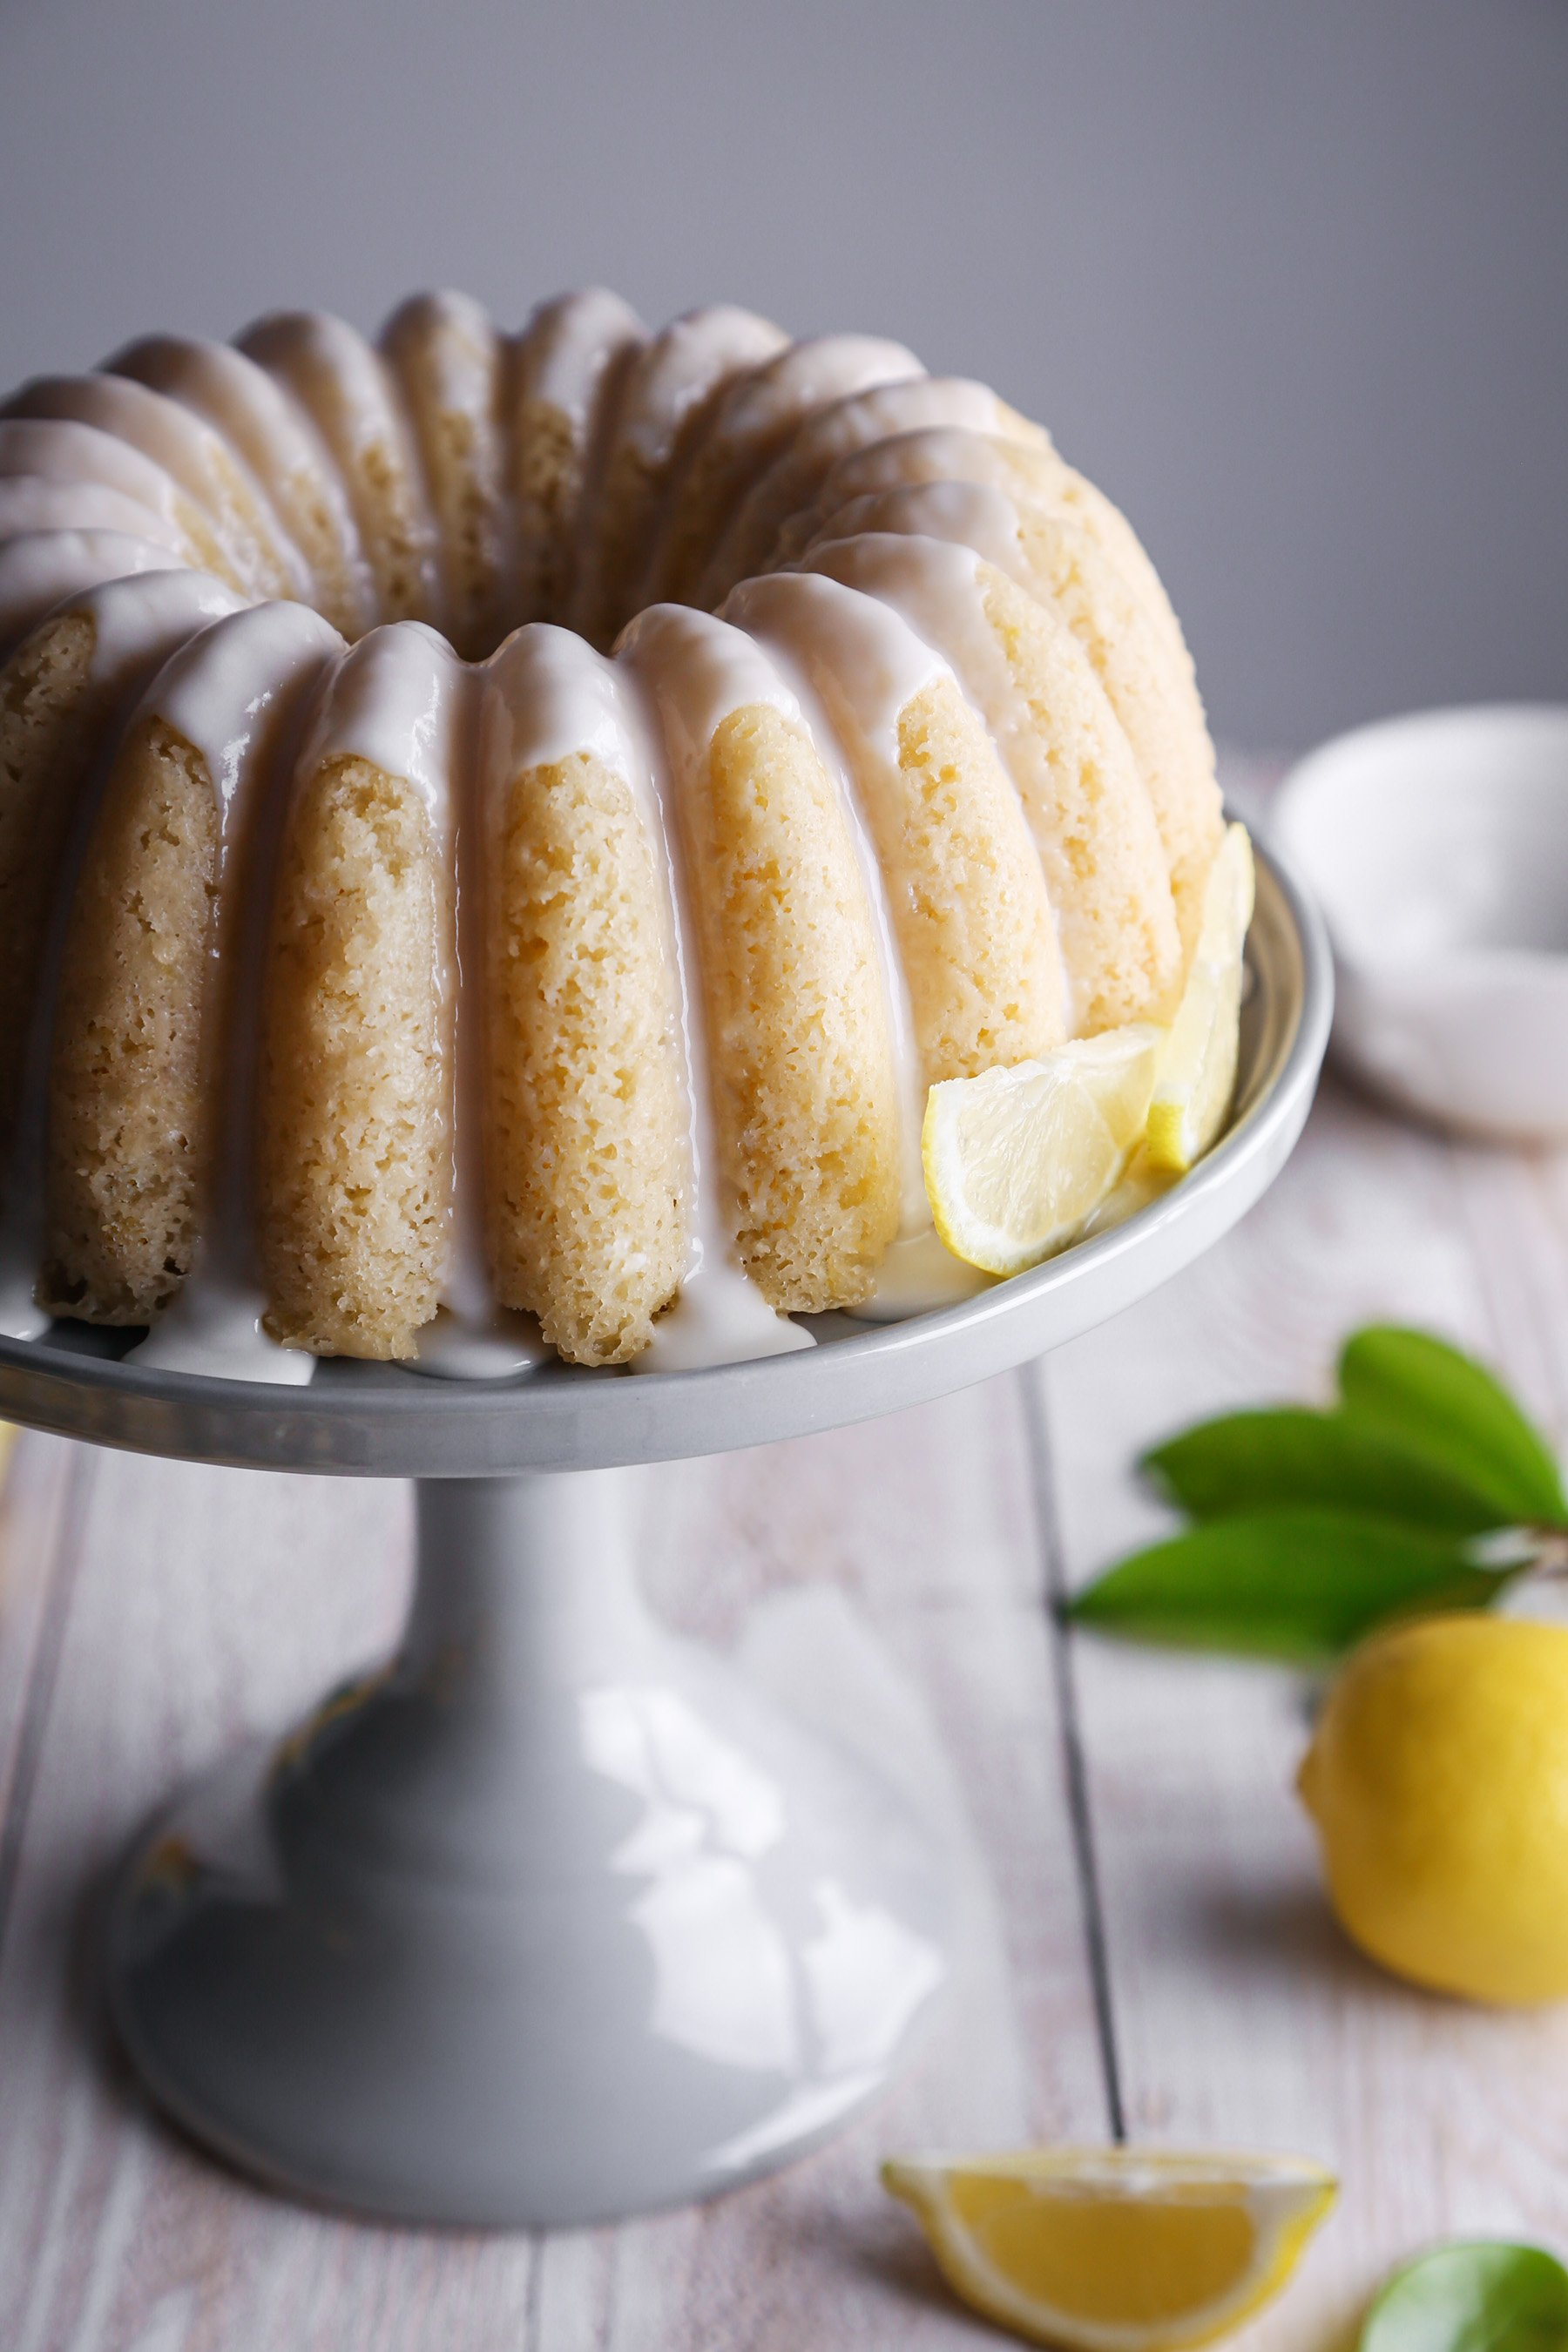 Lemon Yogurt Bundt Cake | Vegan friendly with gluten and refined sugar free options.